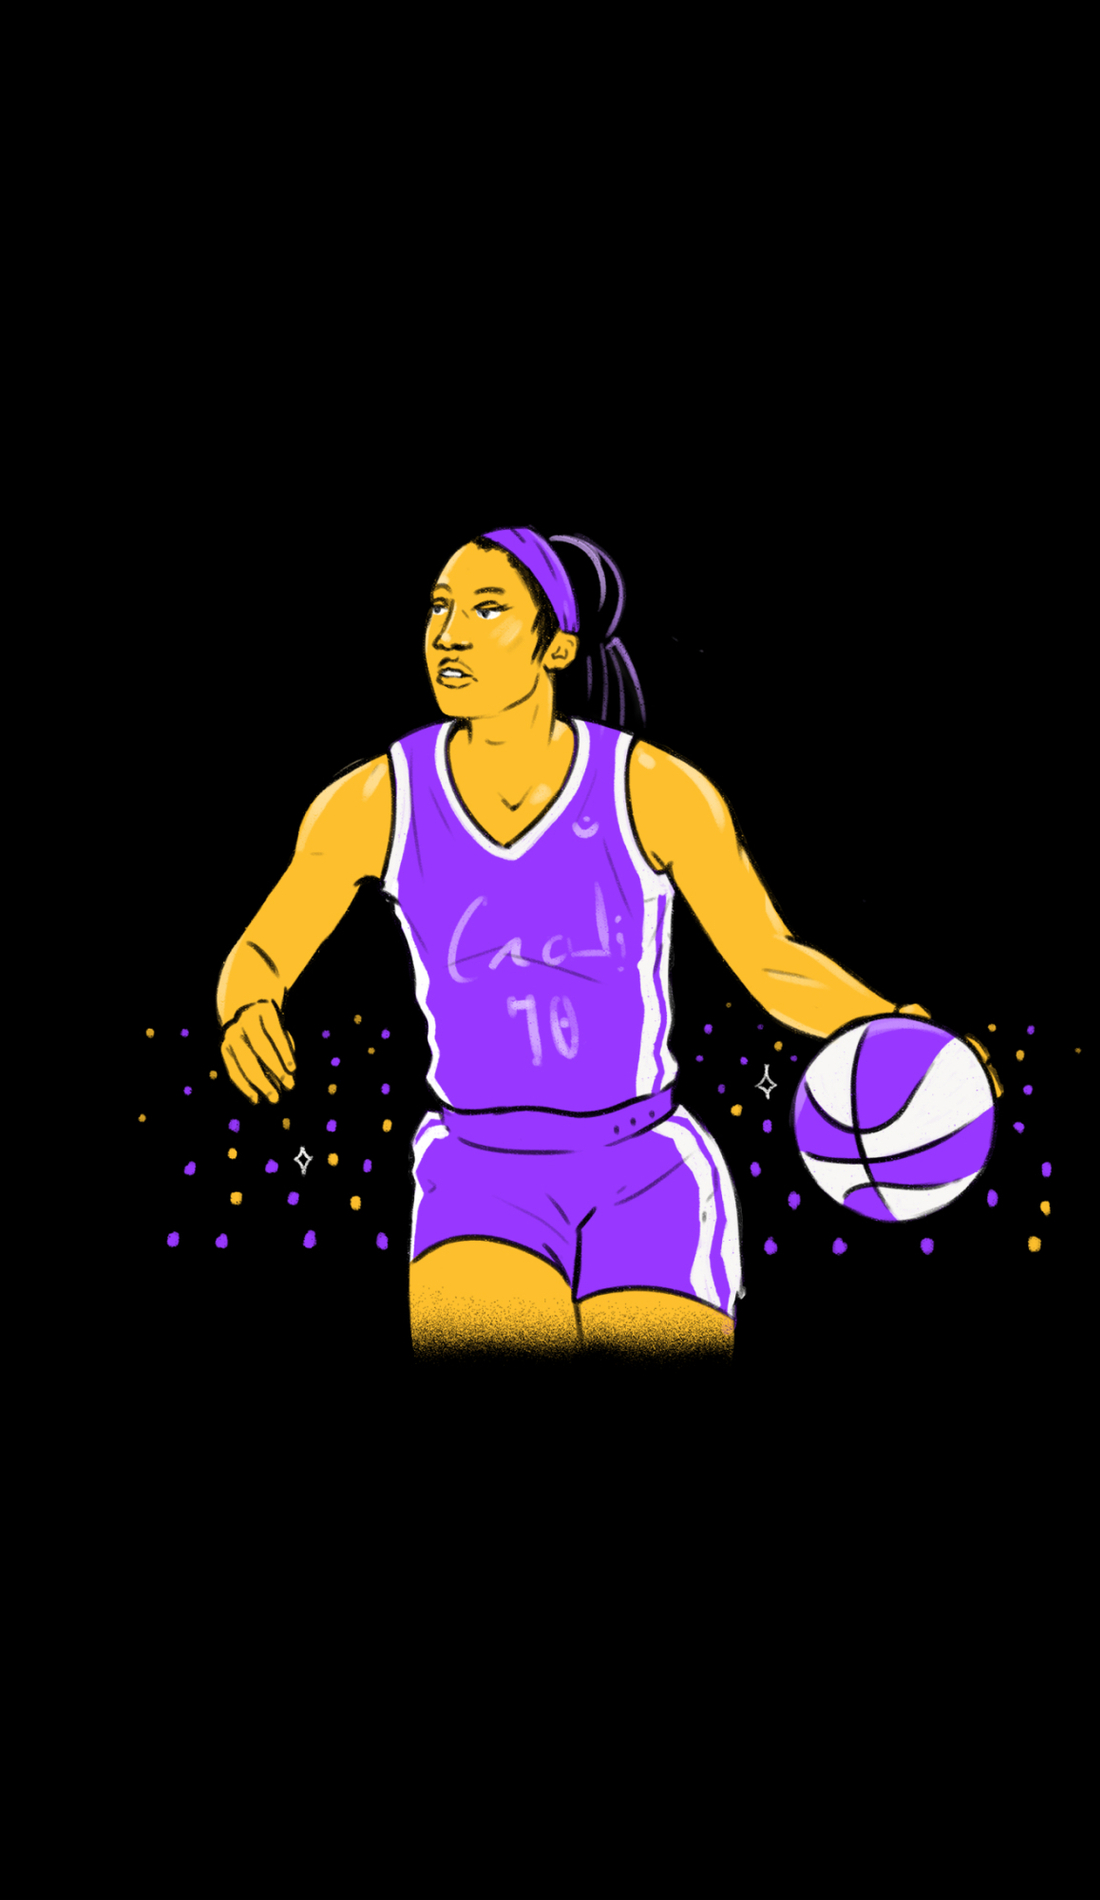 A Fresno State Bulldogs Womens Basketball live event